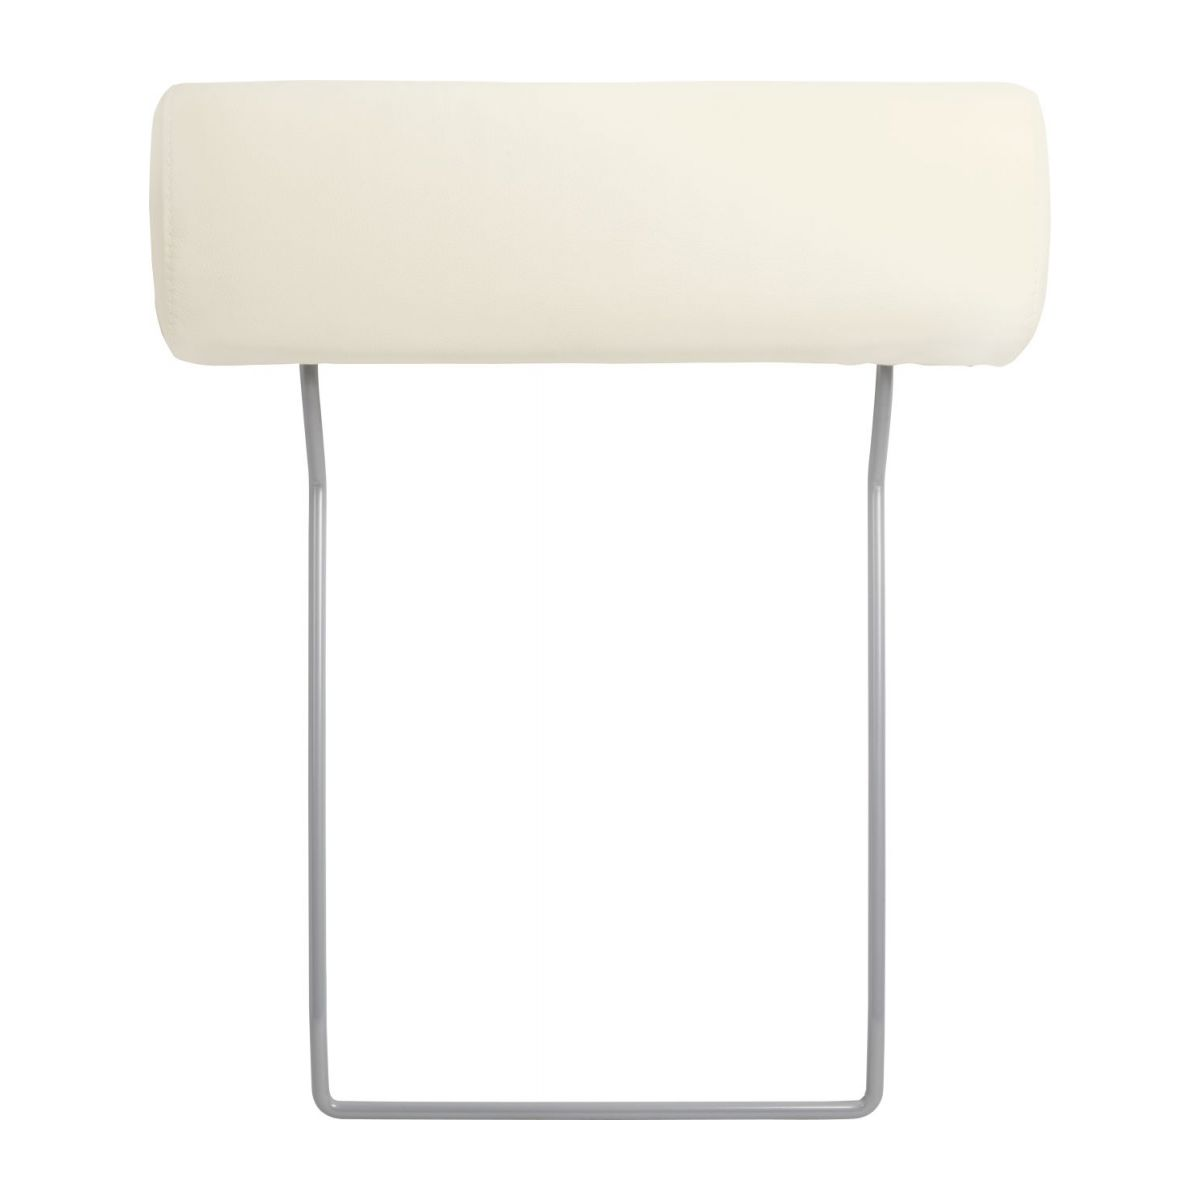 Headrest in Eton veined leather, cream n°2